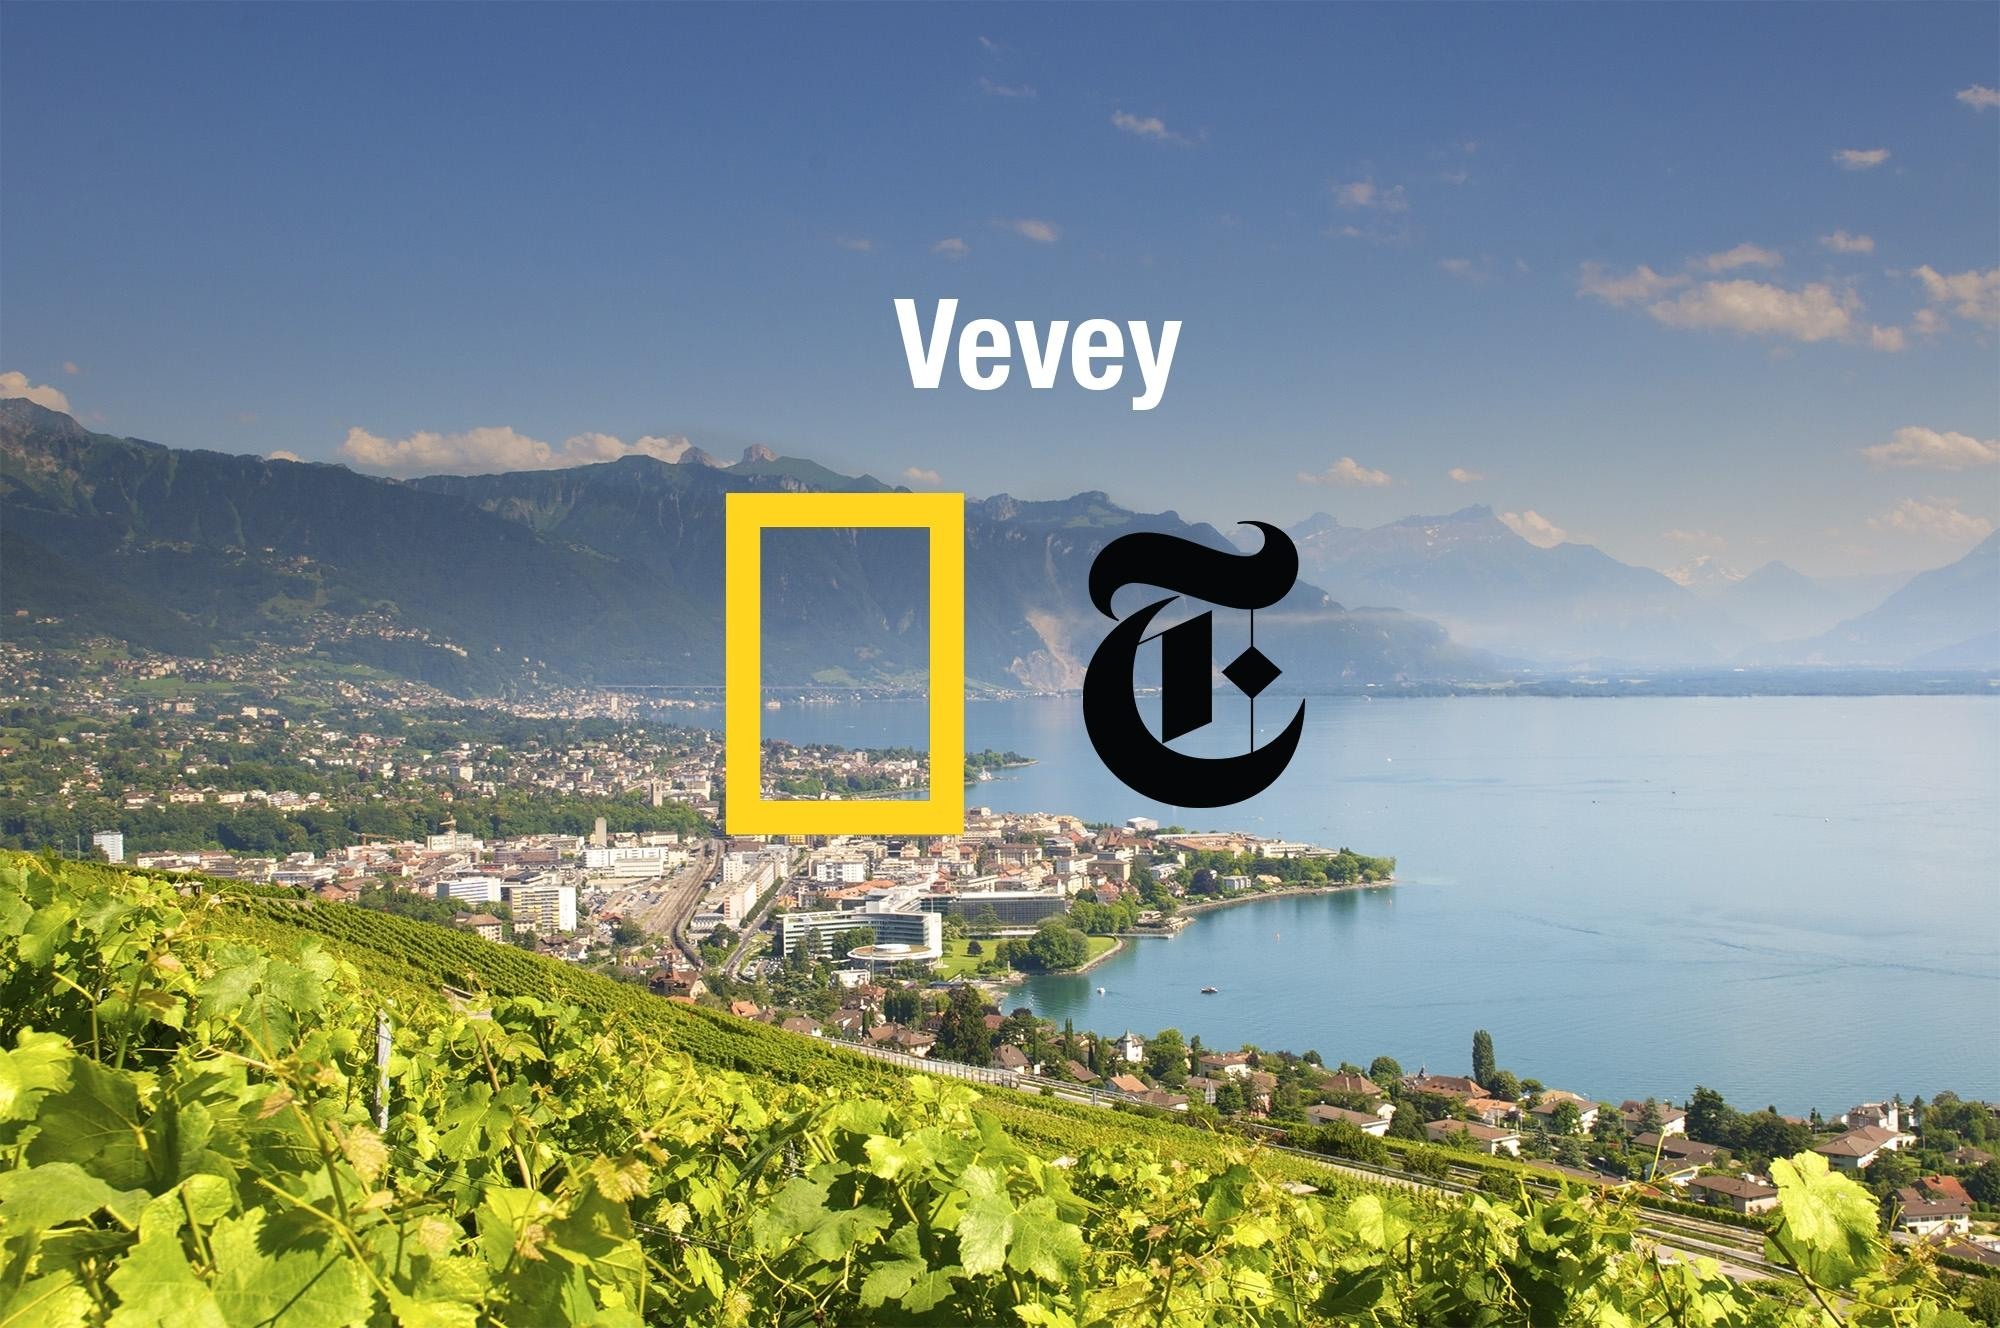 Vevey National Geographic & New York Times